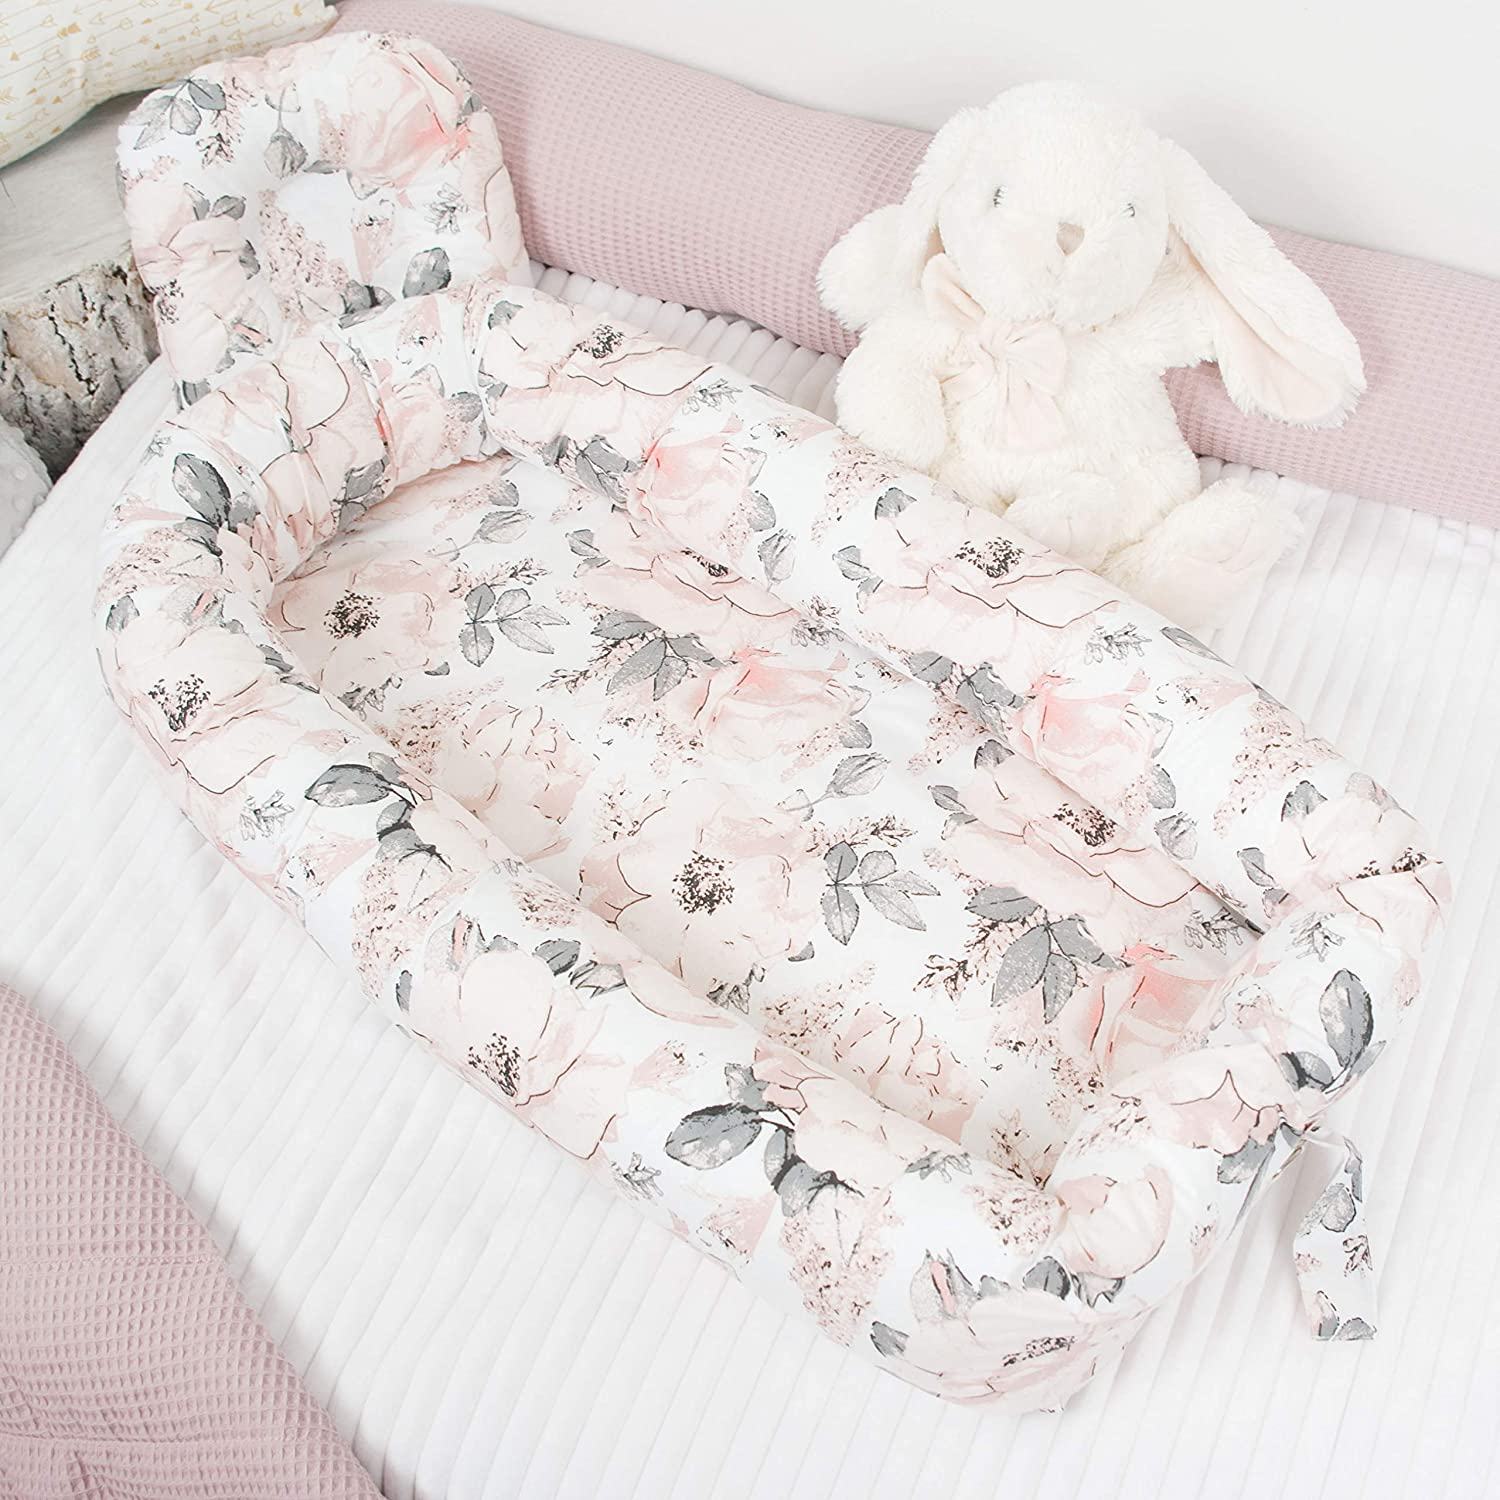 B07GBDG378 Roses Baby nest with removable cover, flowers toddler size nest bed portable crib lounger baby bassinet co sleeper babynest grand bed travel pad pod for newborn co sleeping 8142CP7t3xL